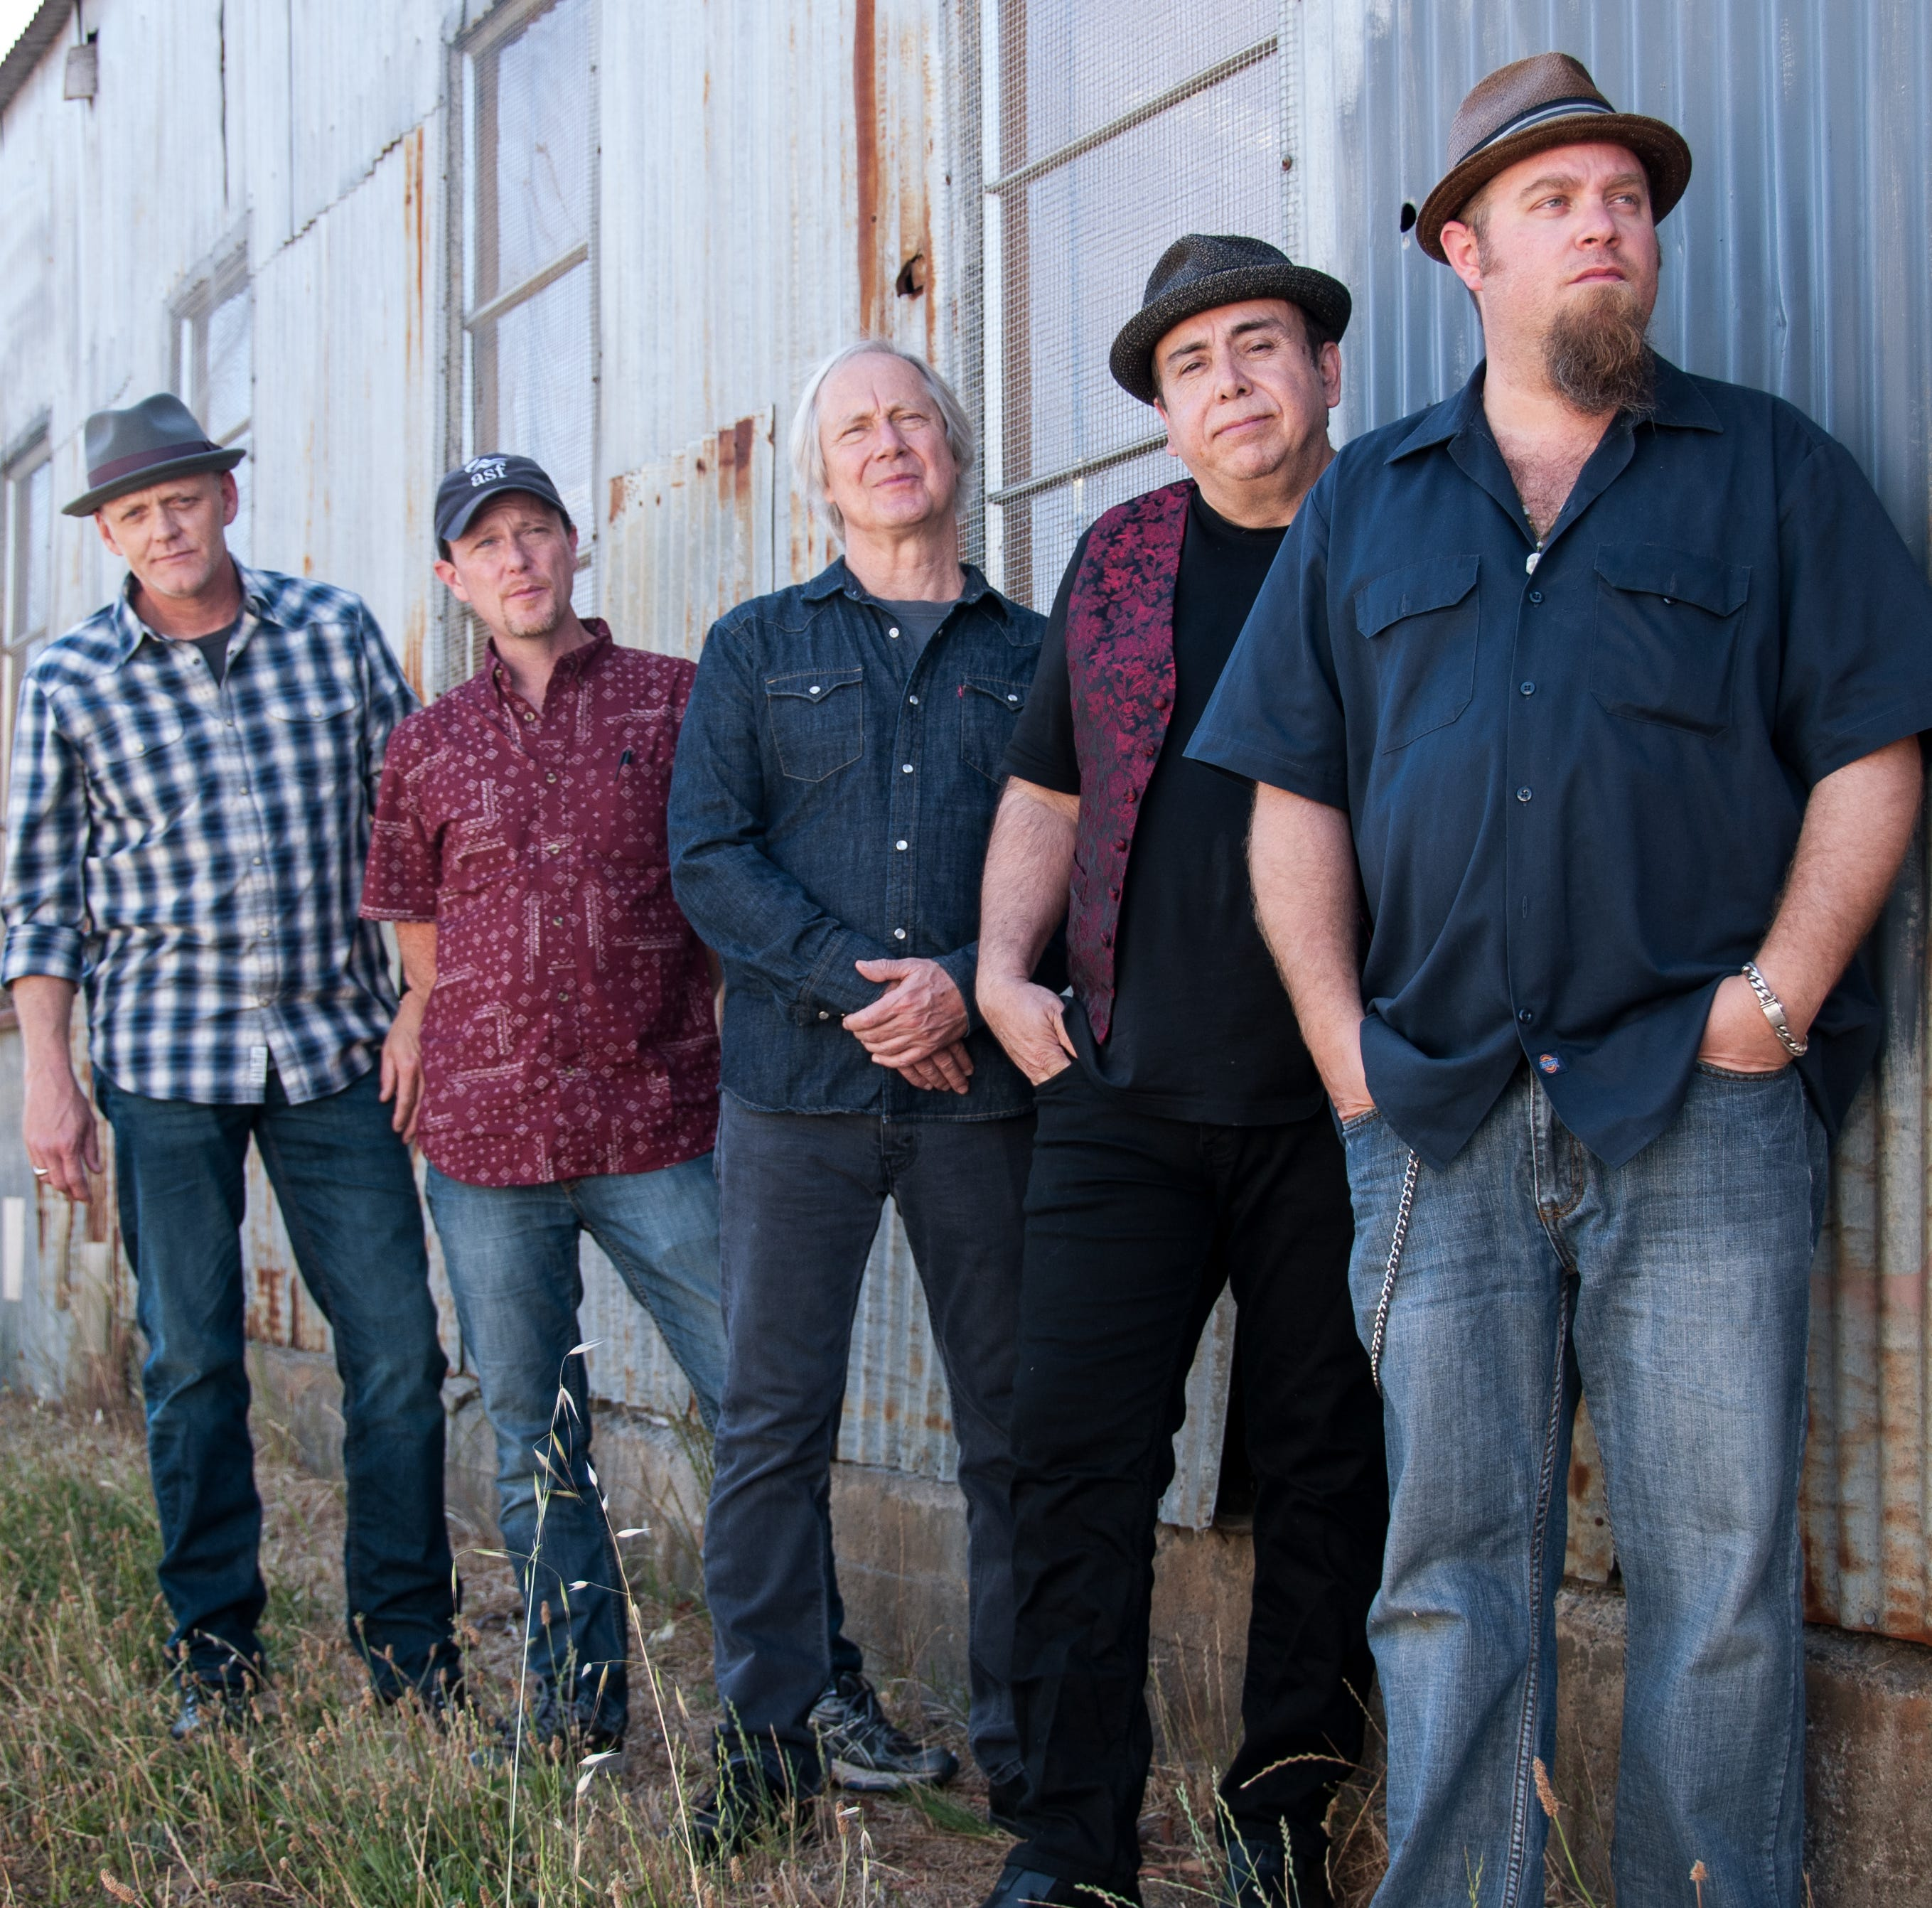 New York's The Weight Band to perform in Green Lake